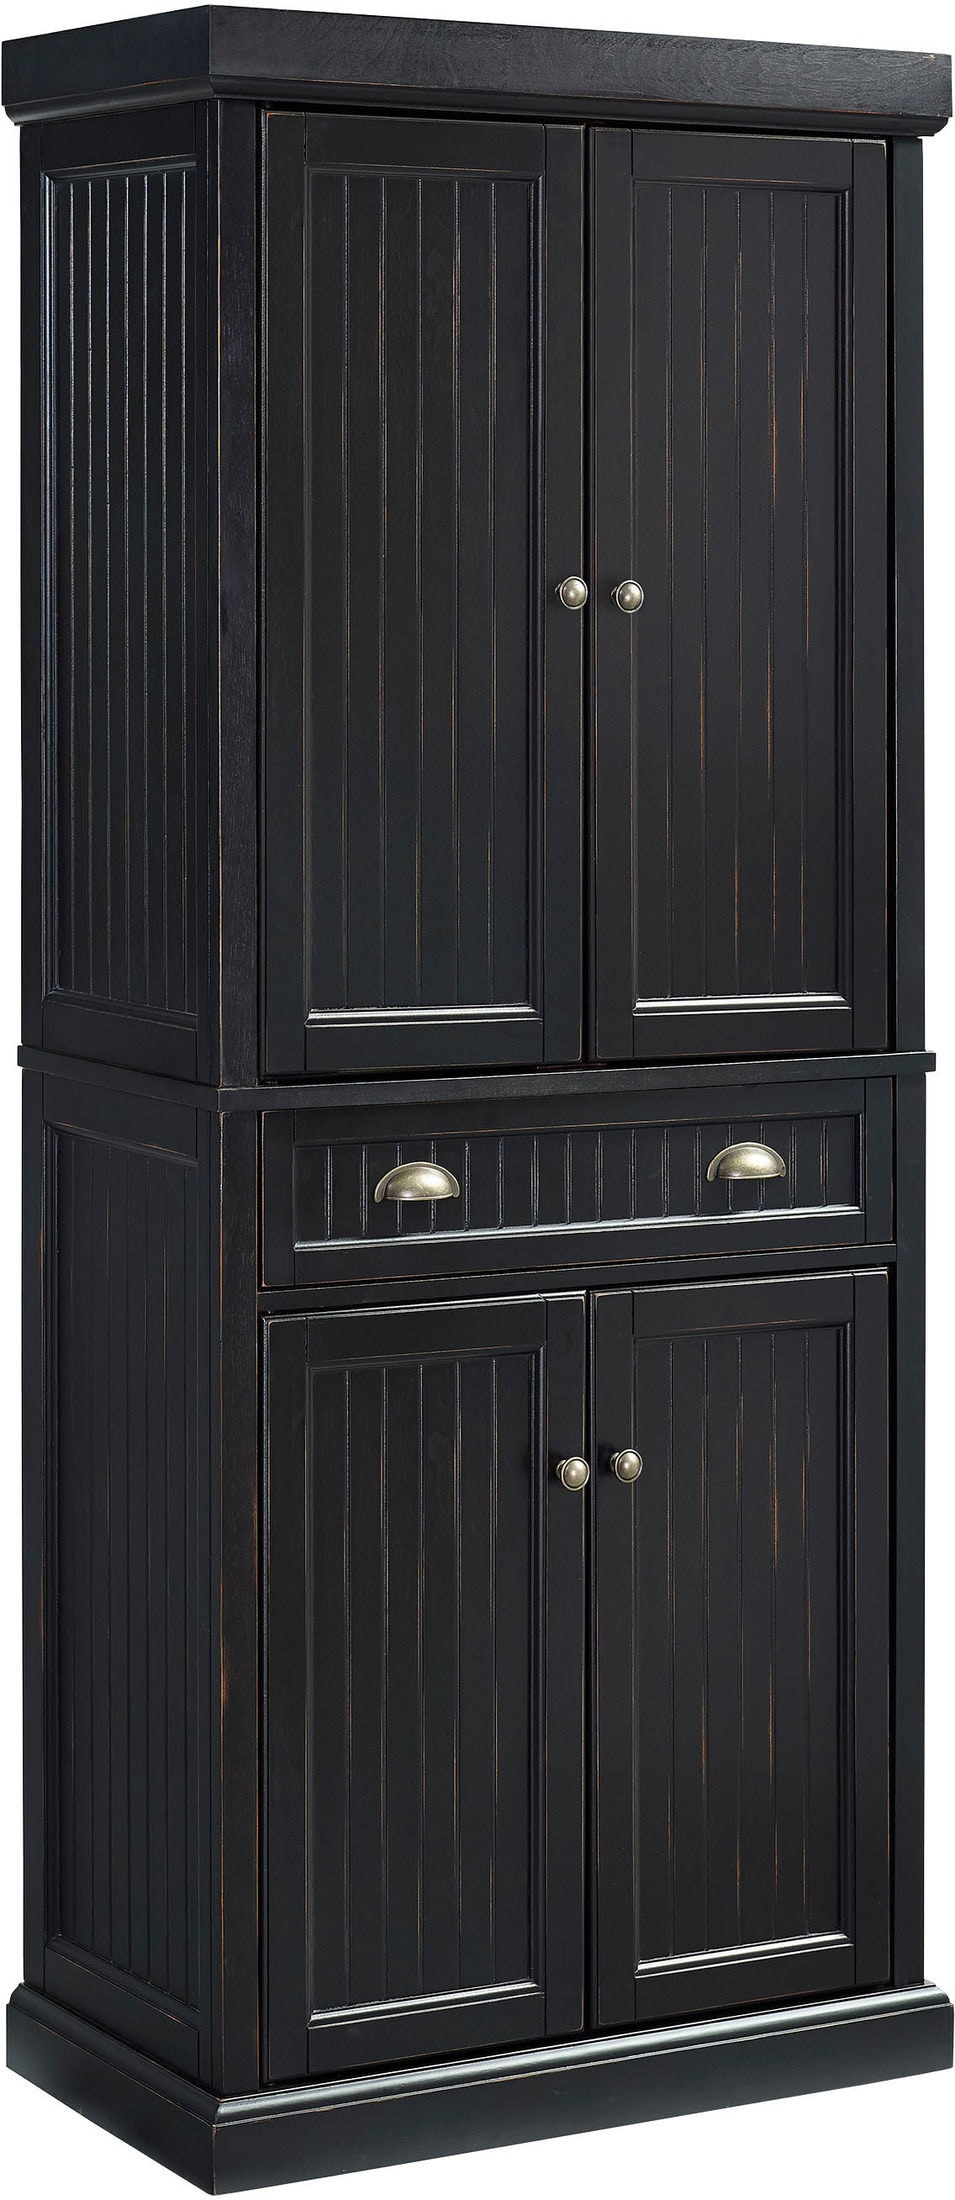 Dining Room Furniture - Conway Kitchen Pantry